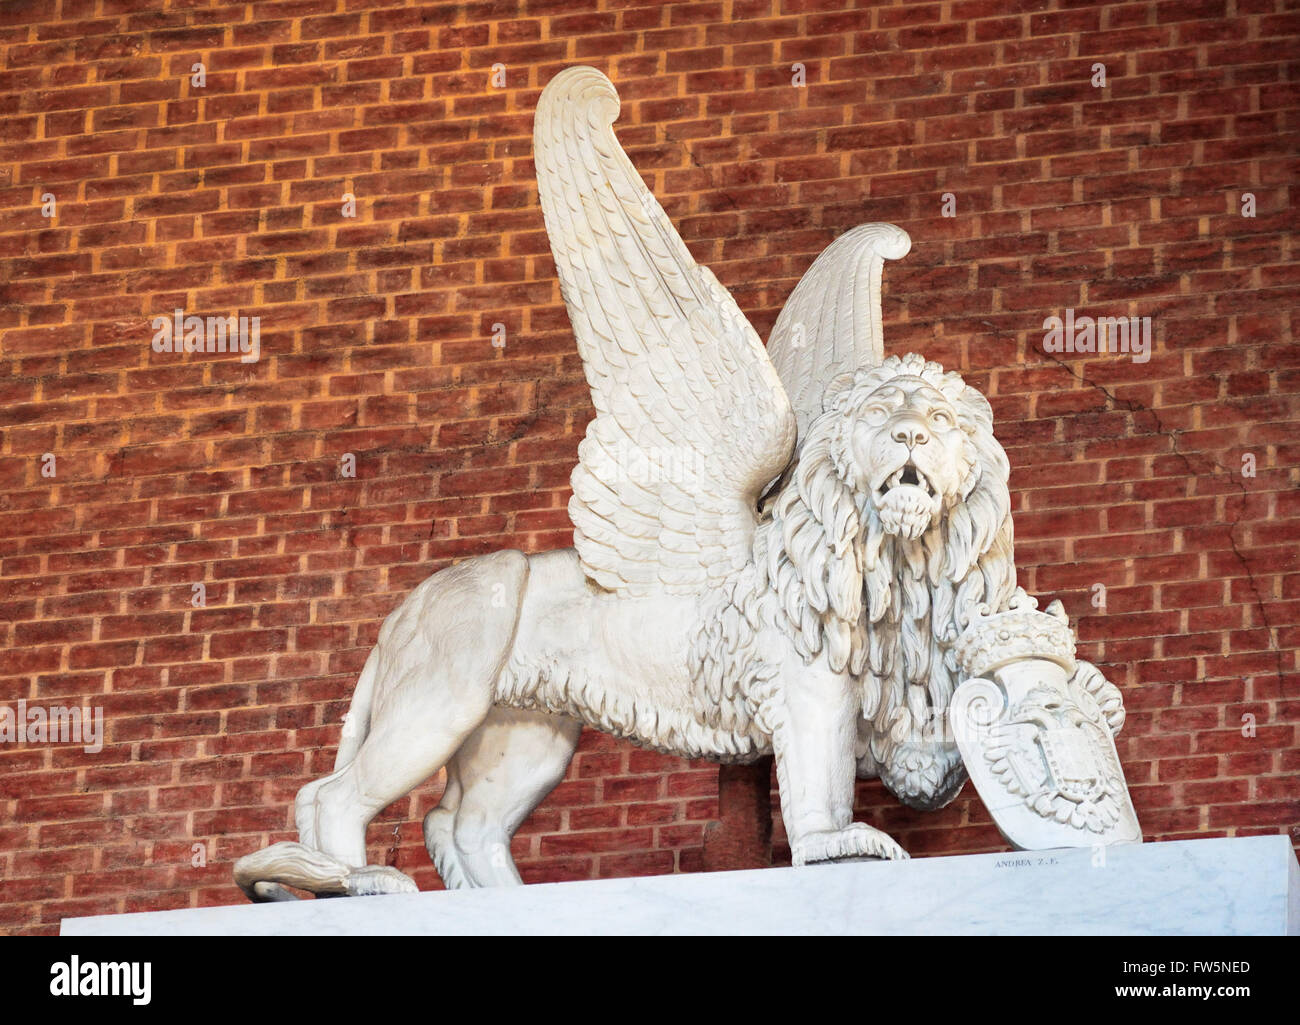 Titian monument lion; a Venetian winged lion at the very top of the Titian monument, in the church of the Frari, - Stock Image